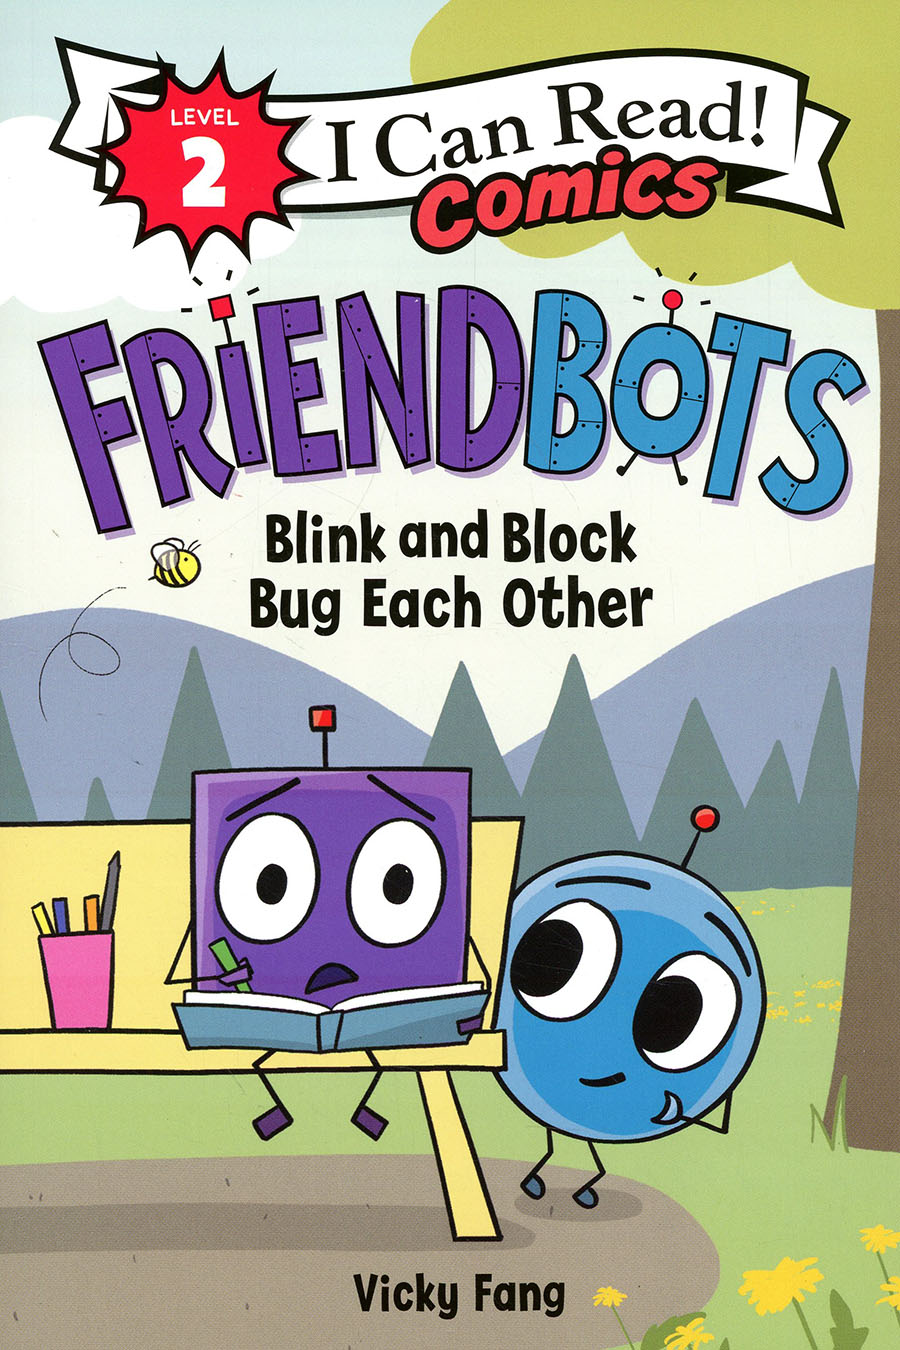 I Can Read Comics Level 2 Friendbots Blink And Block Bug Each Other TP